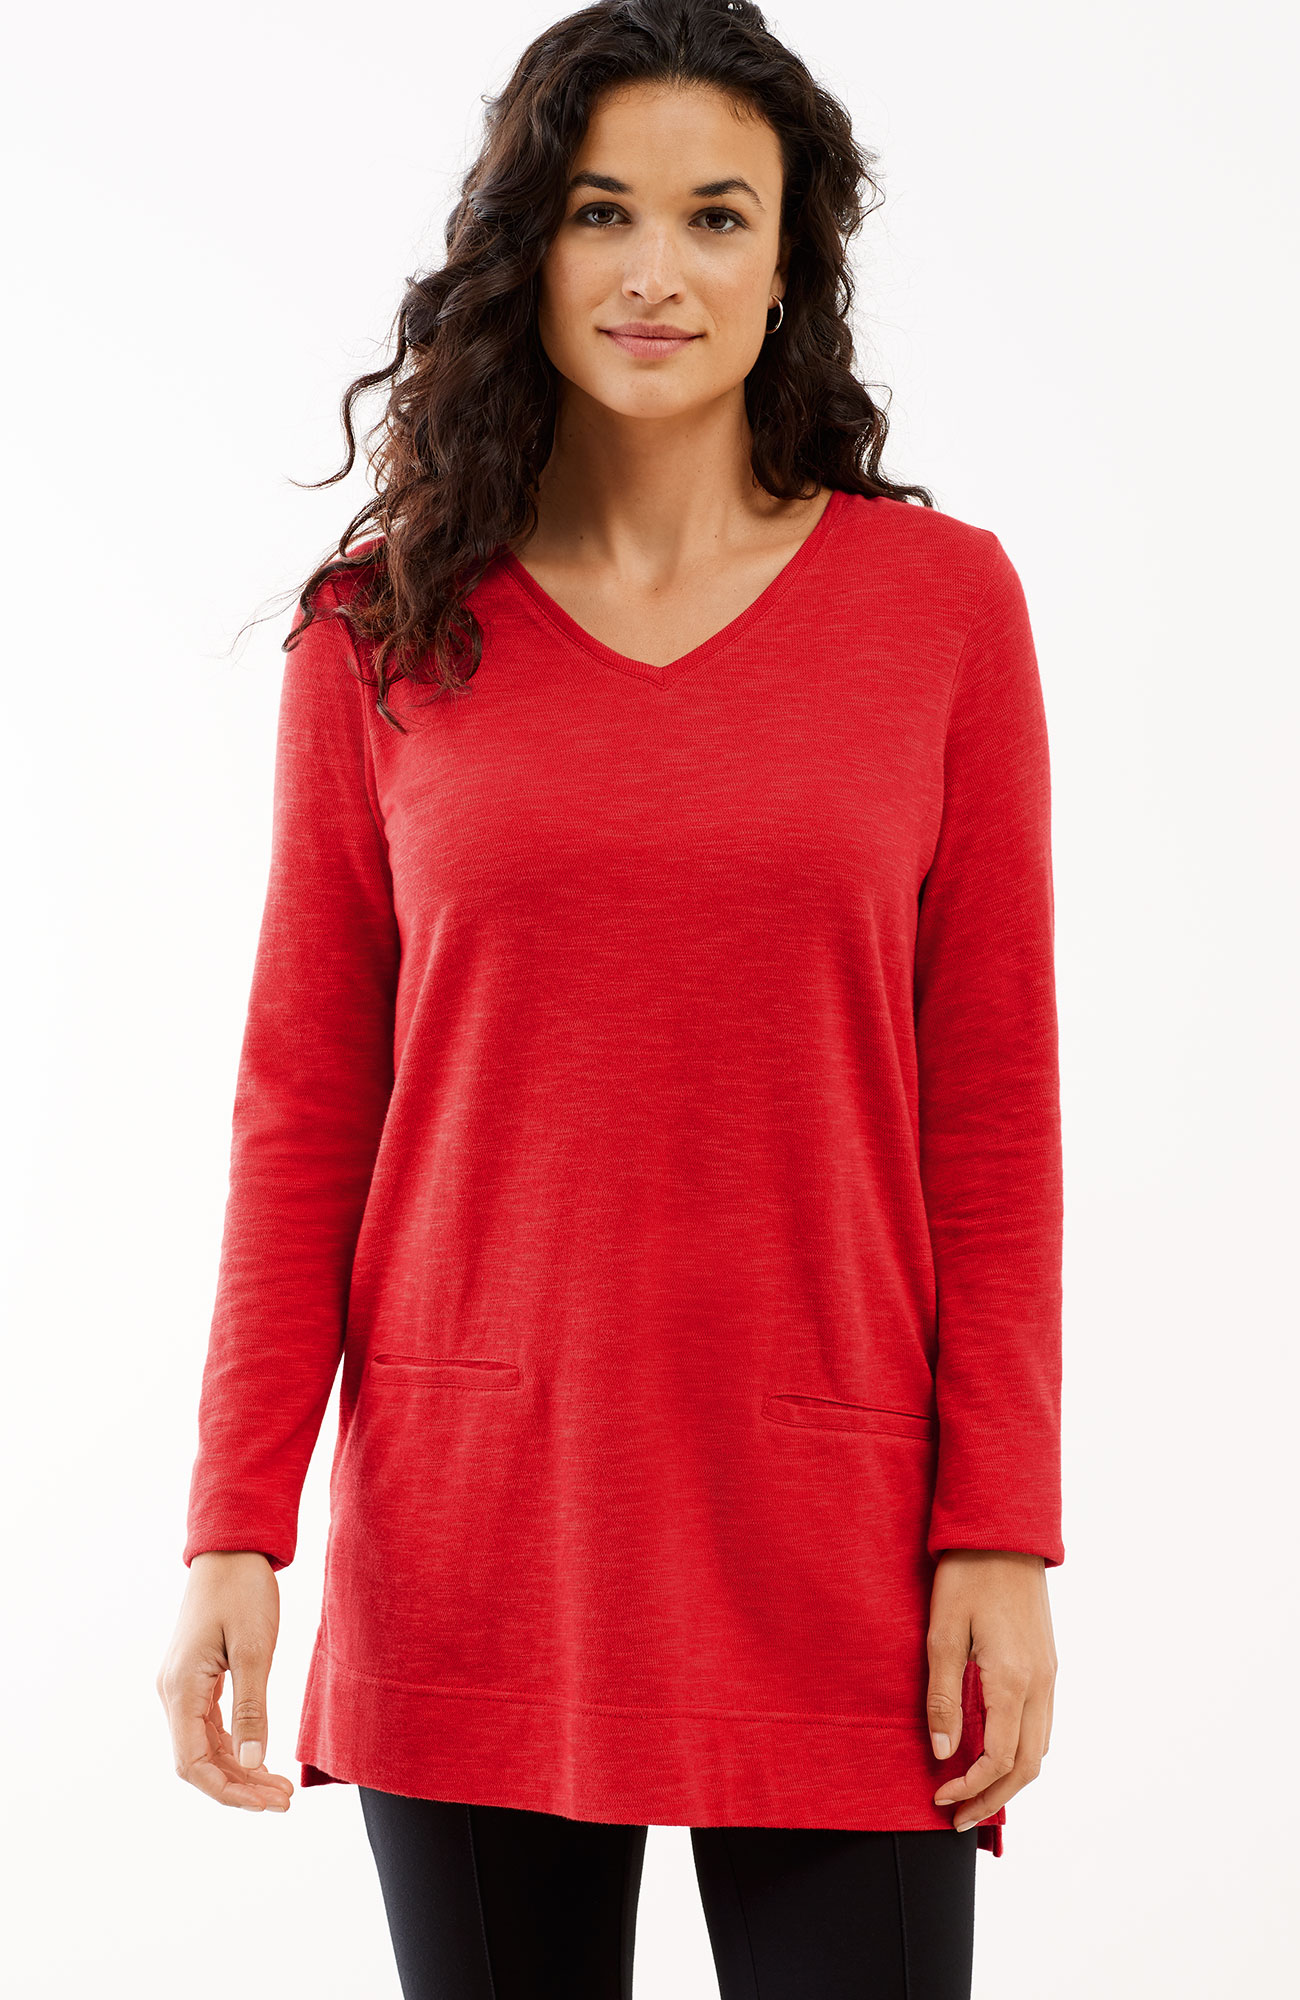 V-neck knit tunic